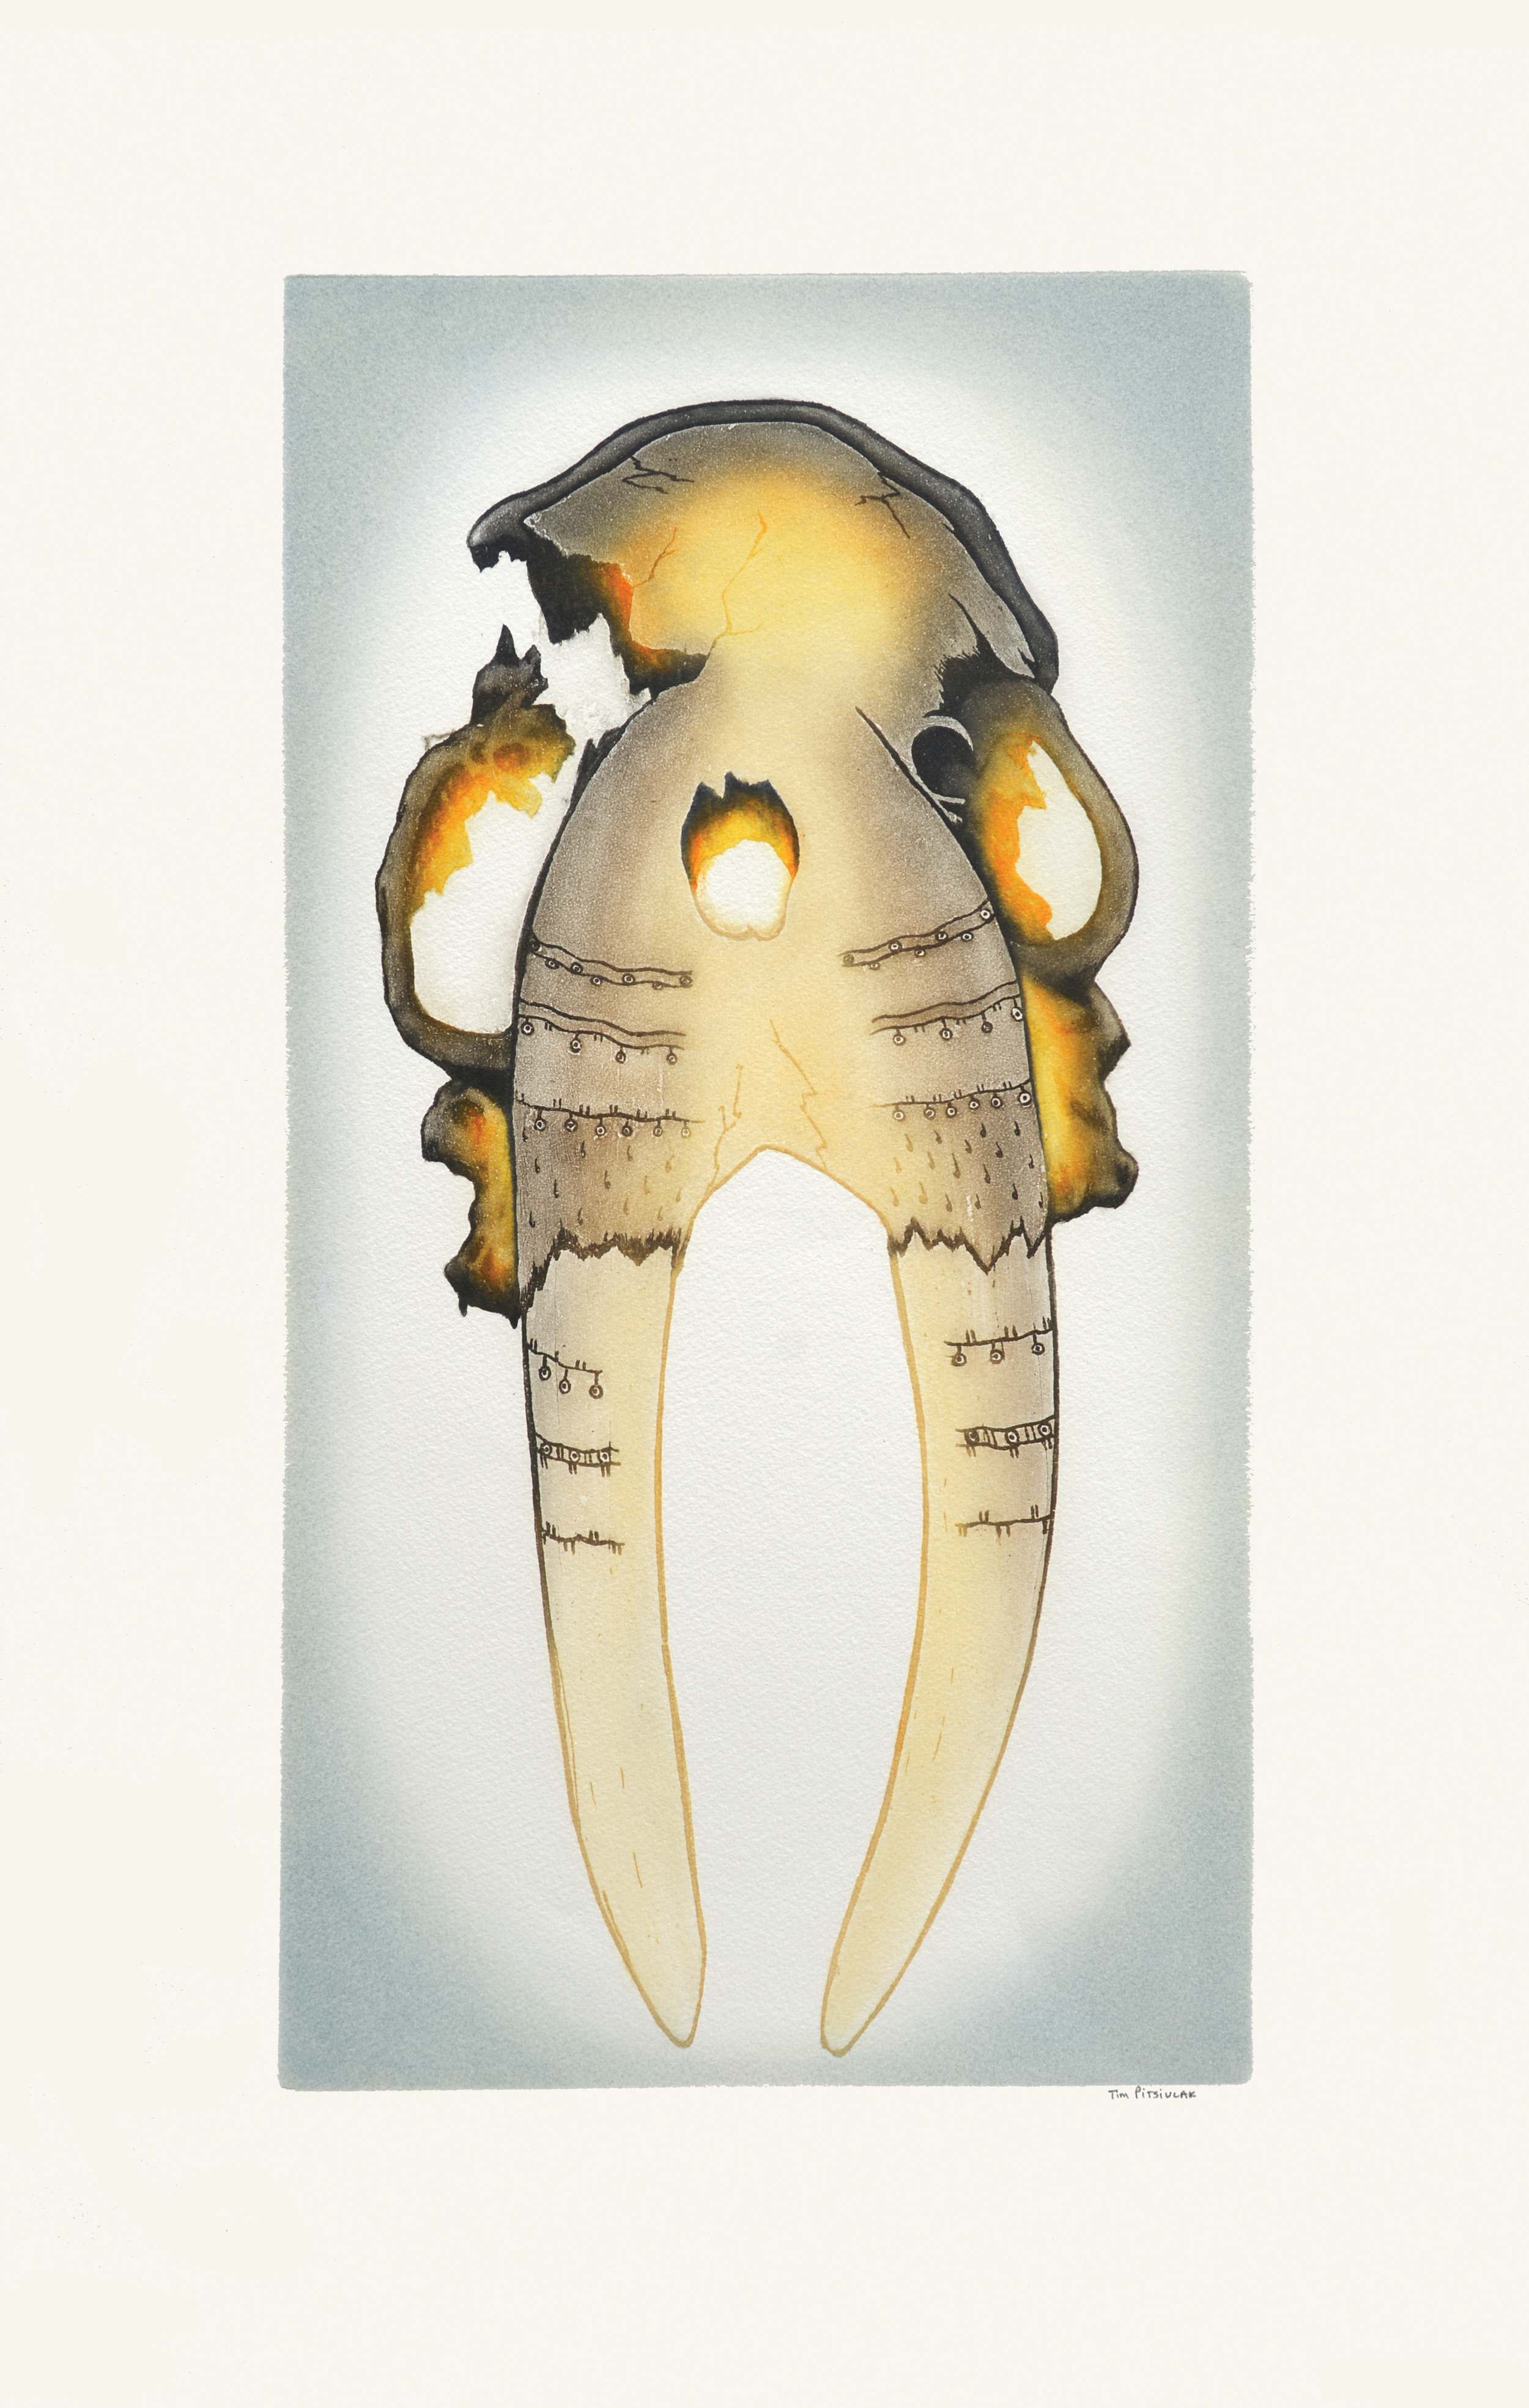 TIM PITSIULAK  16-08  Ancient Walrus Skull   Etching & Aquatint  Paper: Arches White  Printer: Studio PM  75 x 47 cm  $ 800